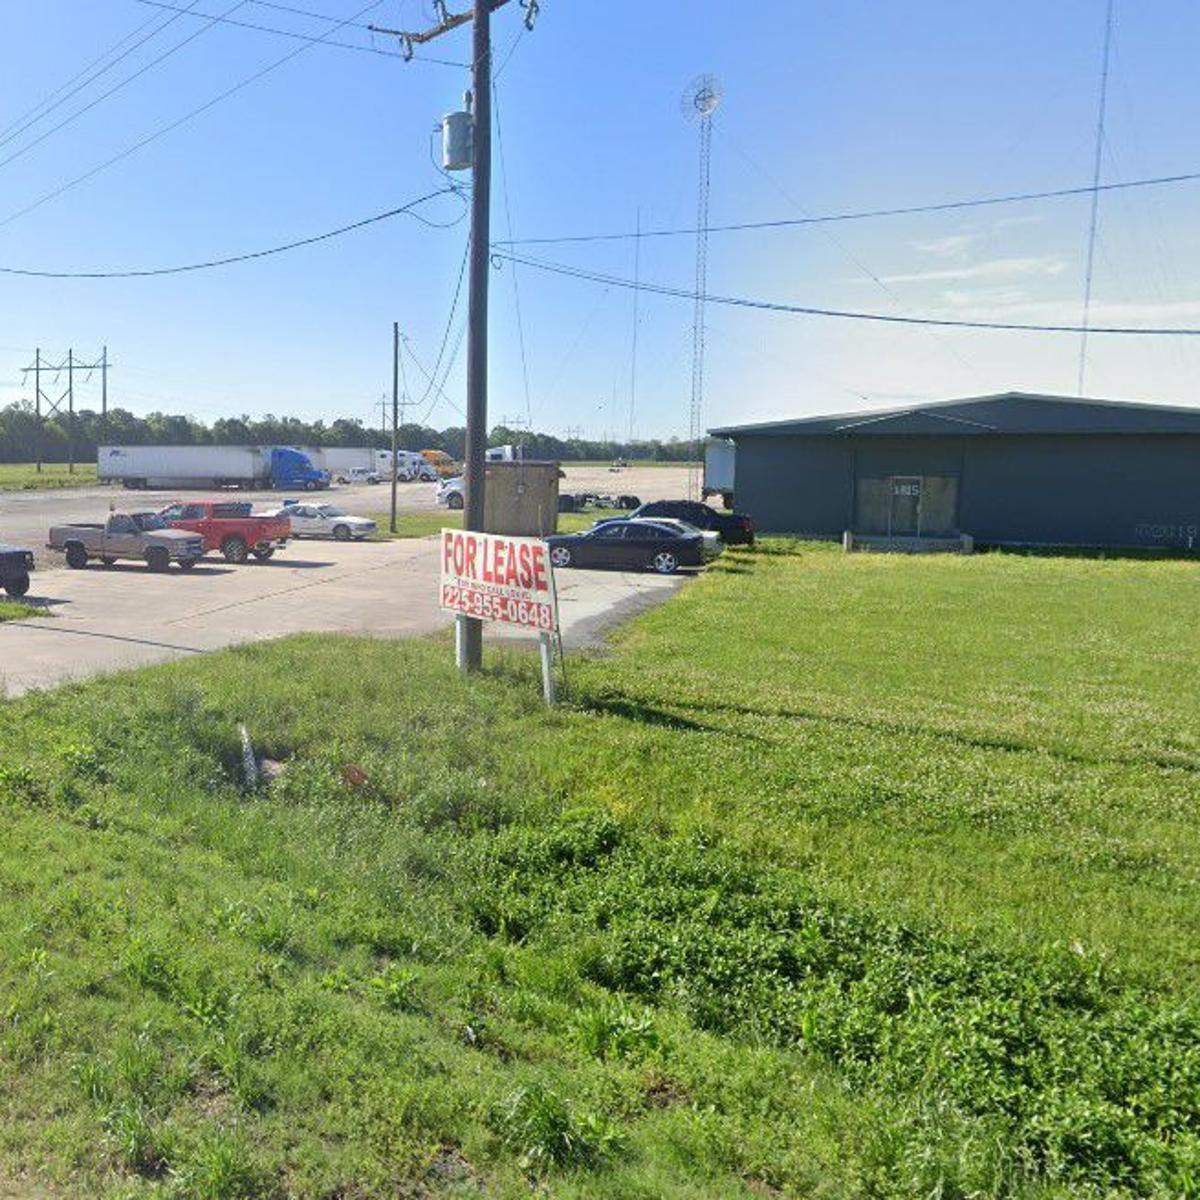 Air Liquide looks to develop new West Baton Rouge site